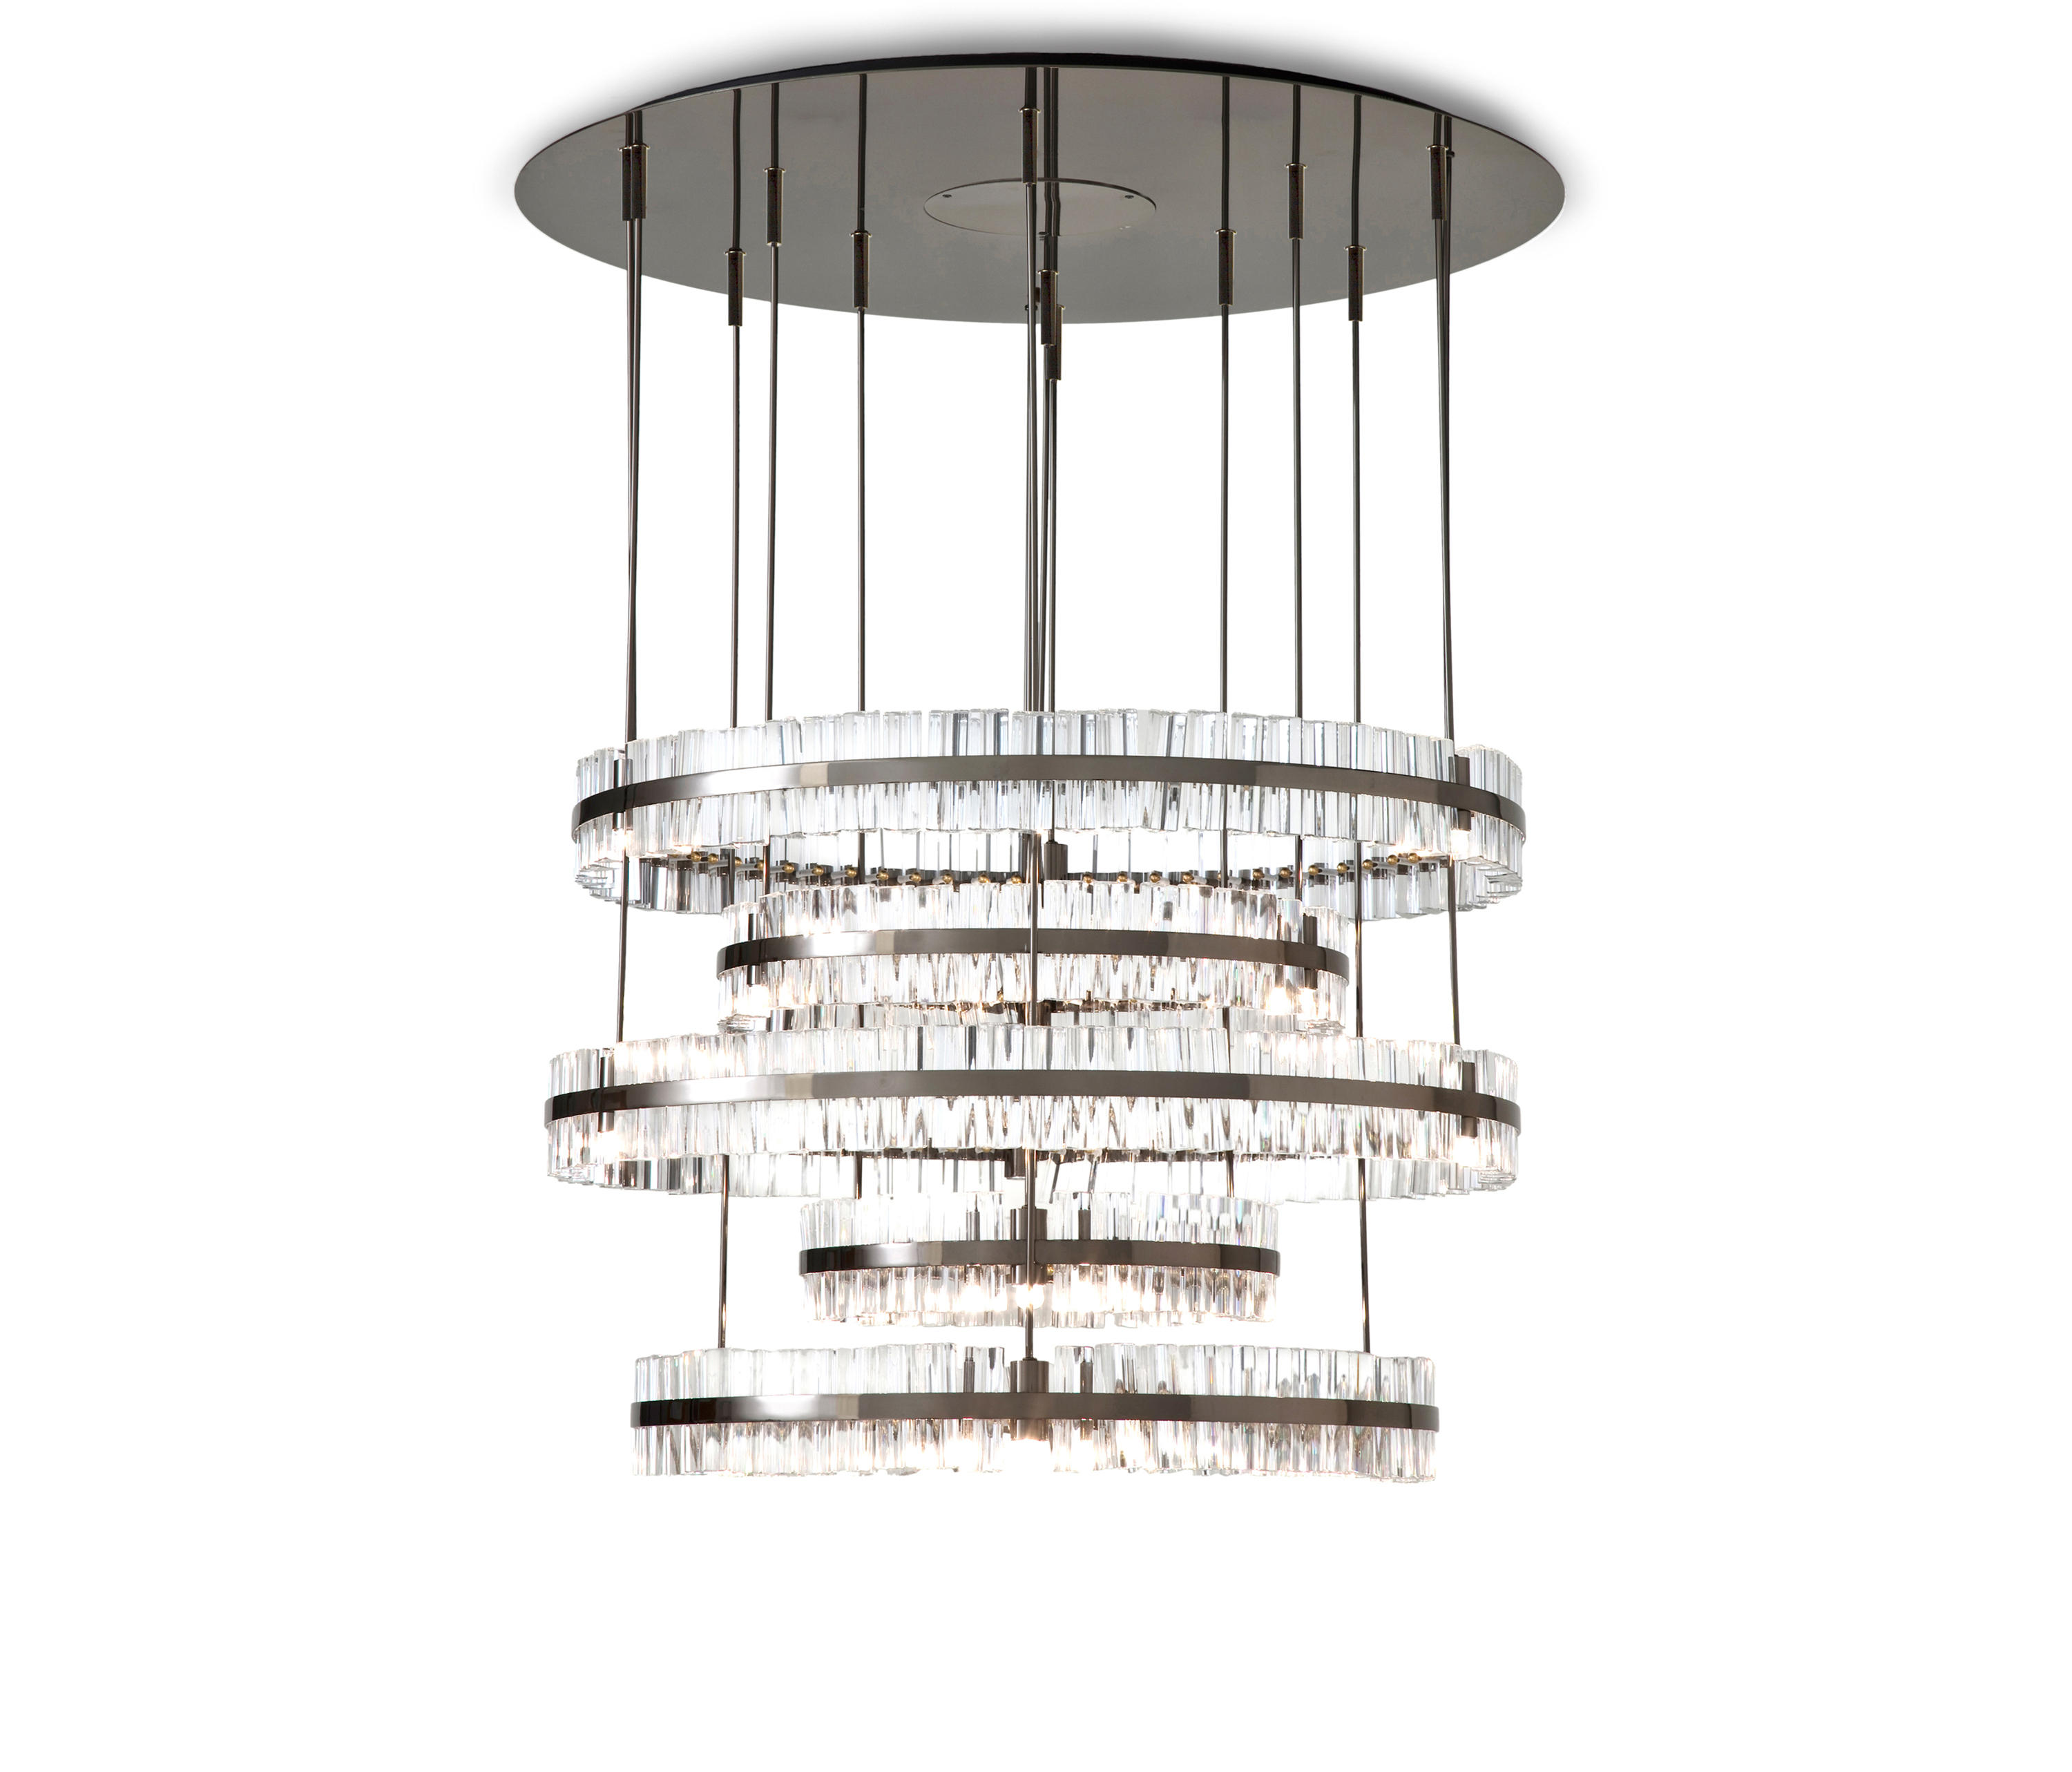 Crono chandelier ceiling suspended chandeliers from baroncelli crono chandelier by baroncelli ceiling suspended chandeliers arubaitofo Images